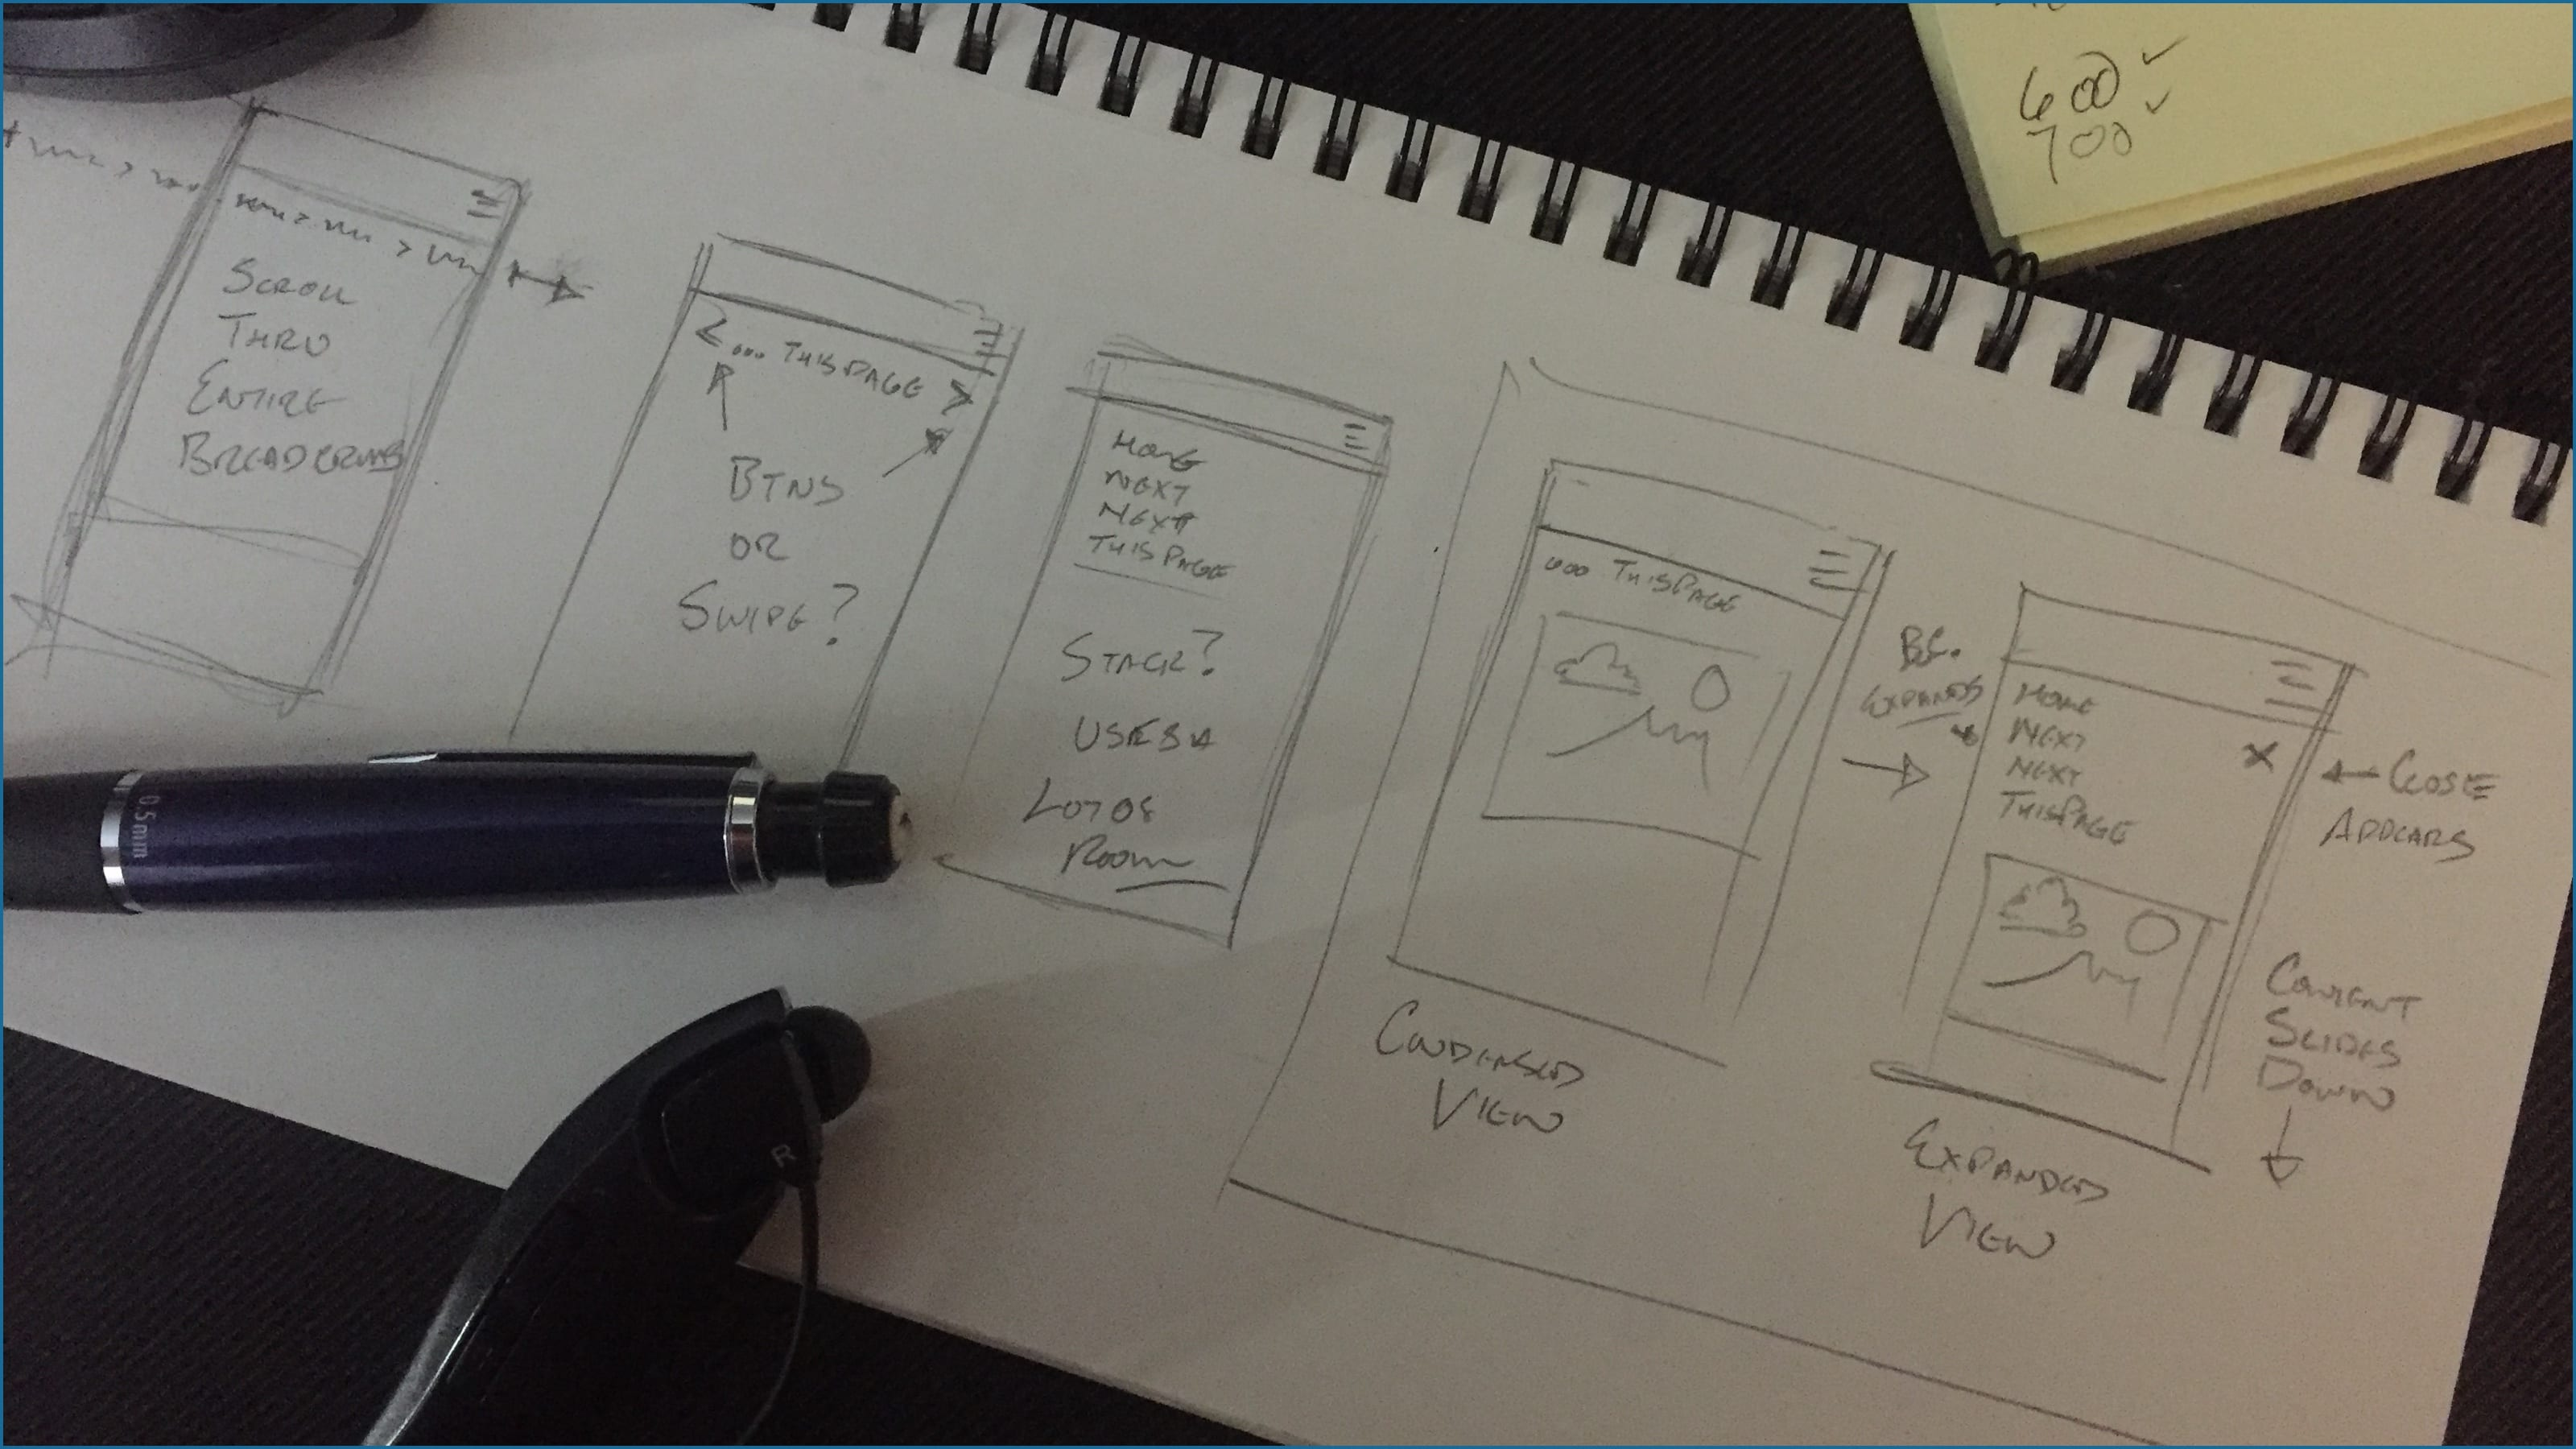 Photo of sketches for early ideas for mobile breadcrumb patterns.